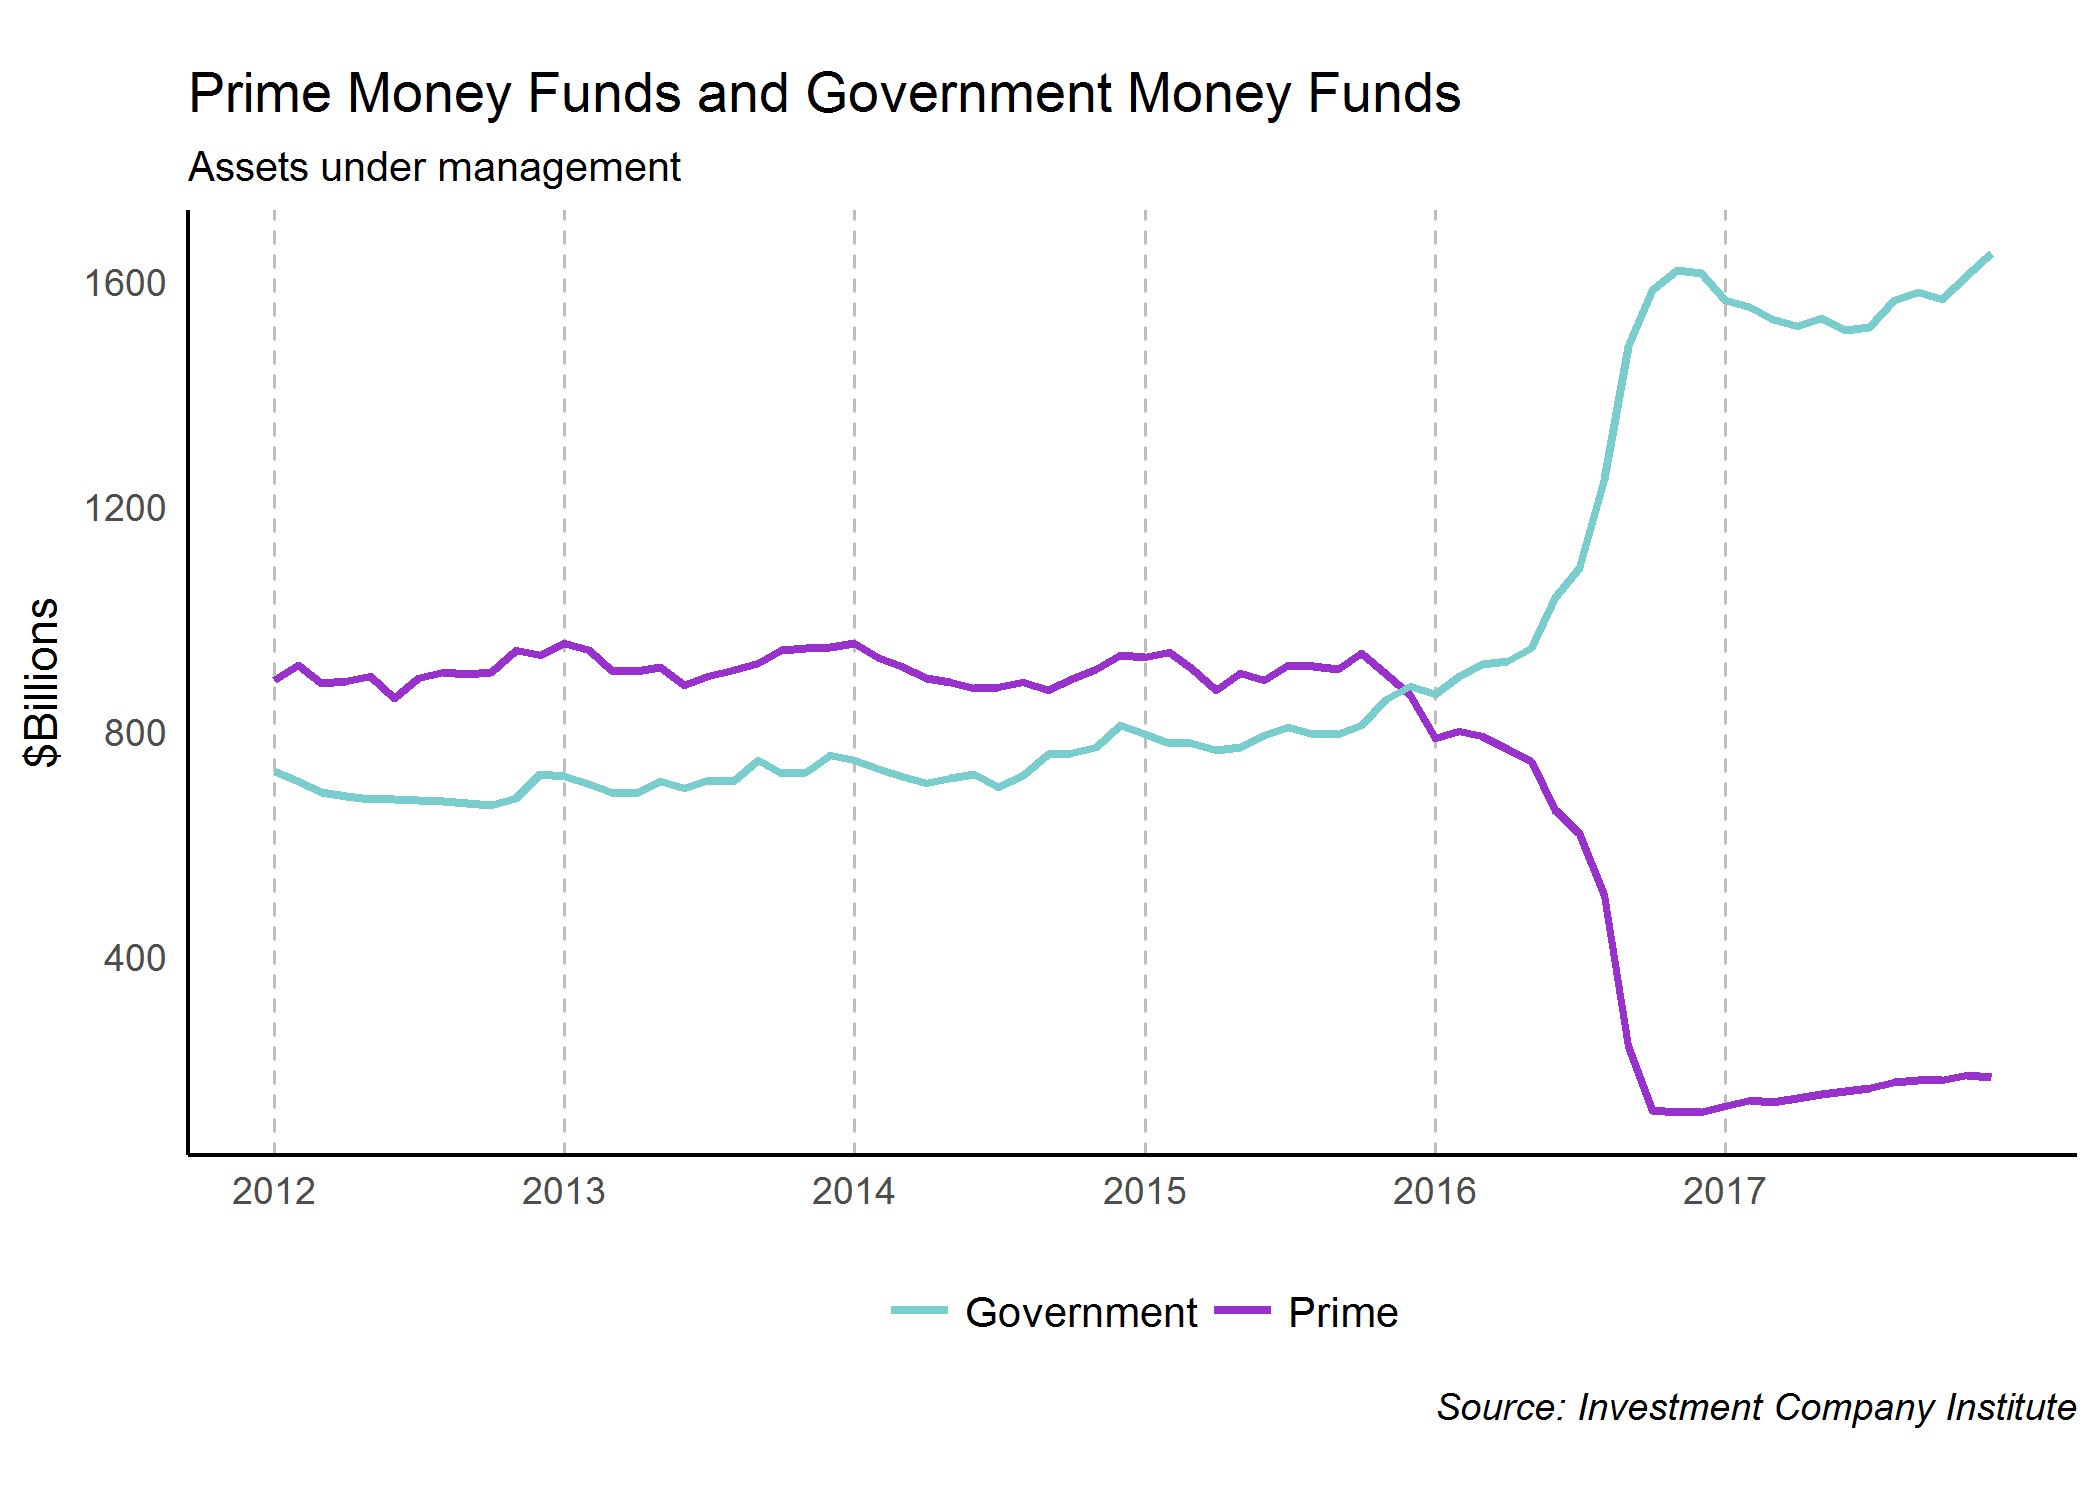 Prime Money Funds and Government Funds Chart